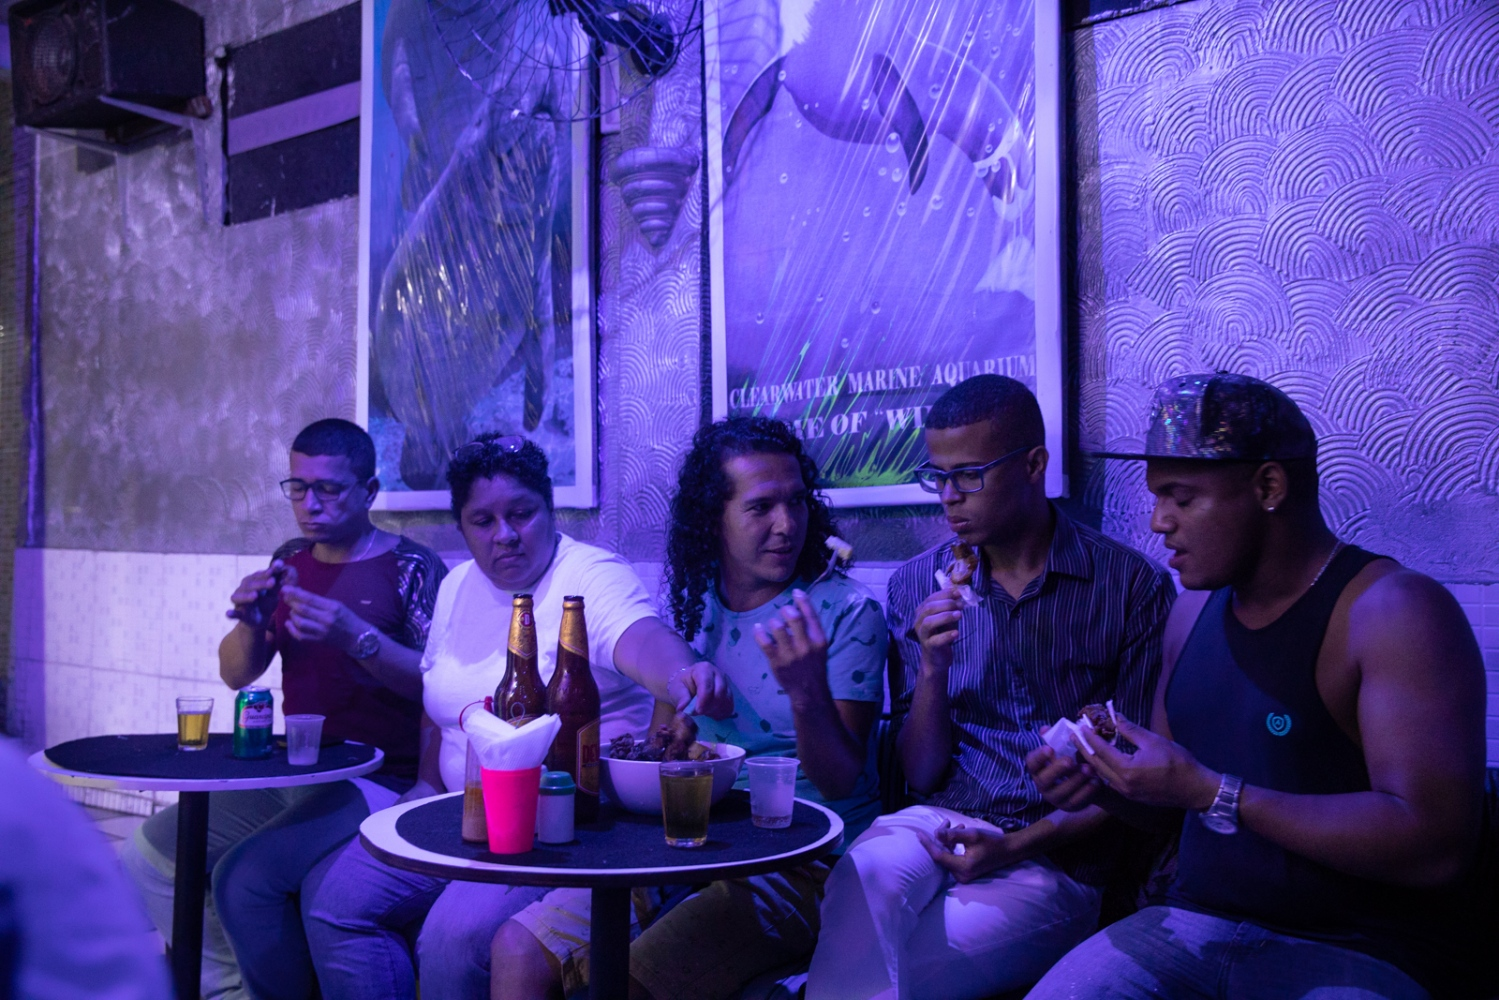 Friends and people of the LGBT mouvement of Bahia together at the Marujo's bar, a underground bar in Salvador for LGBT concerts and Drag Queen shows.